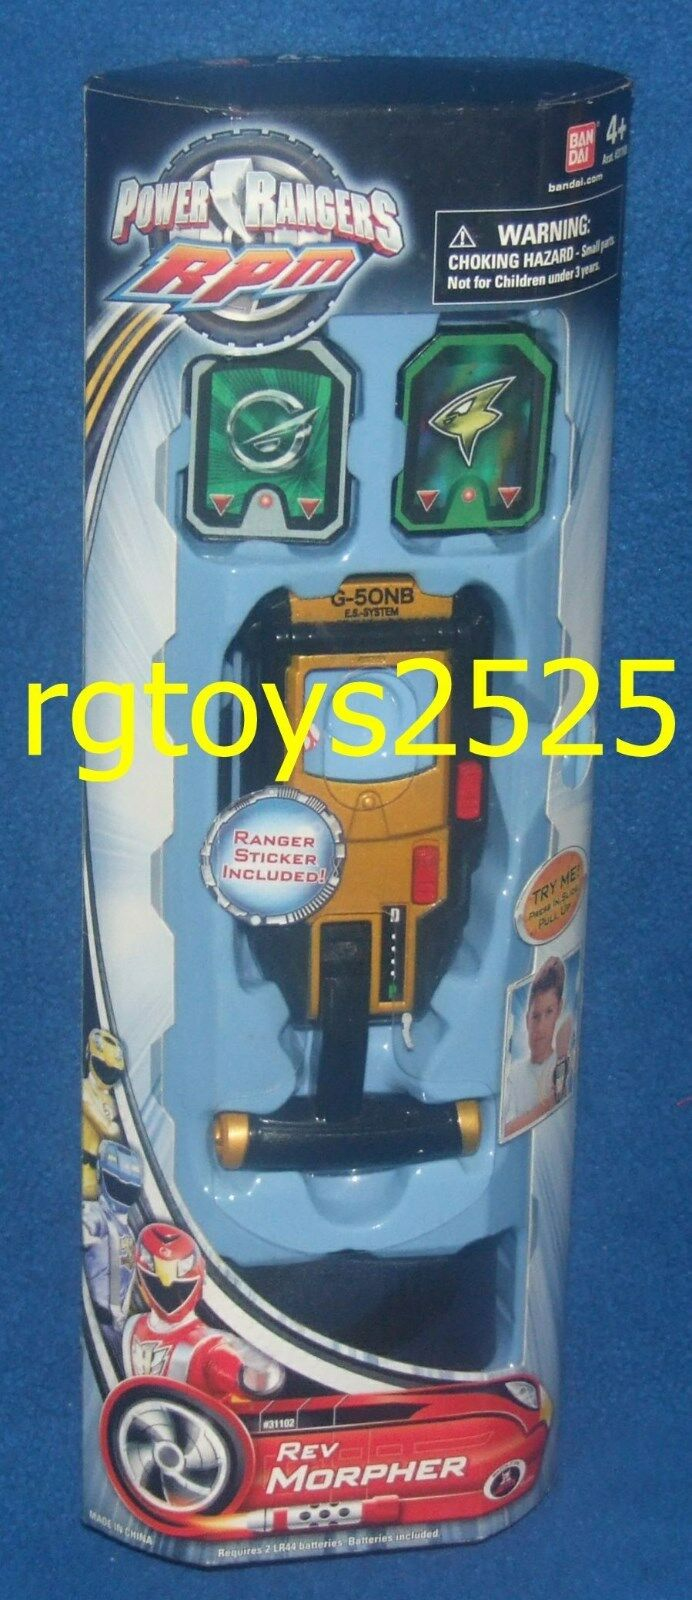 Power Rangers RPM REV MORPHER New Factory Sealed w sounds 2009